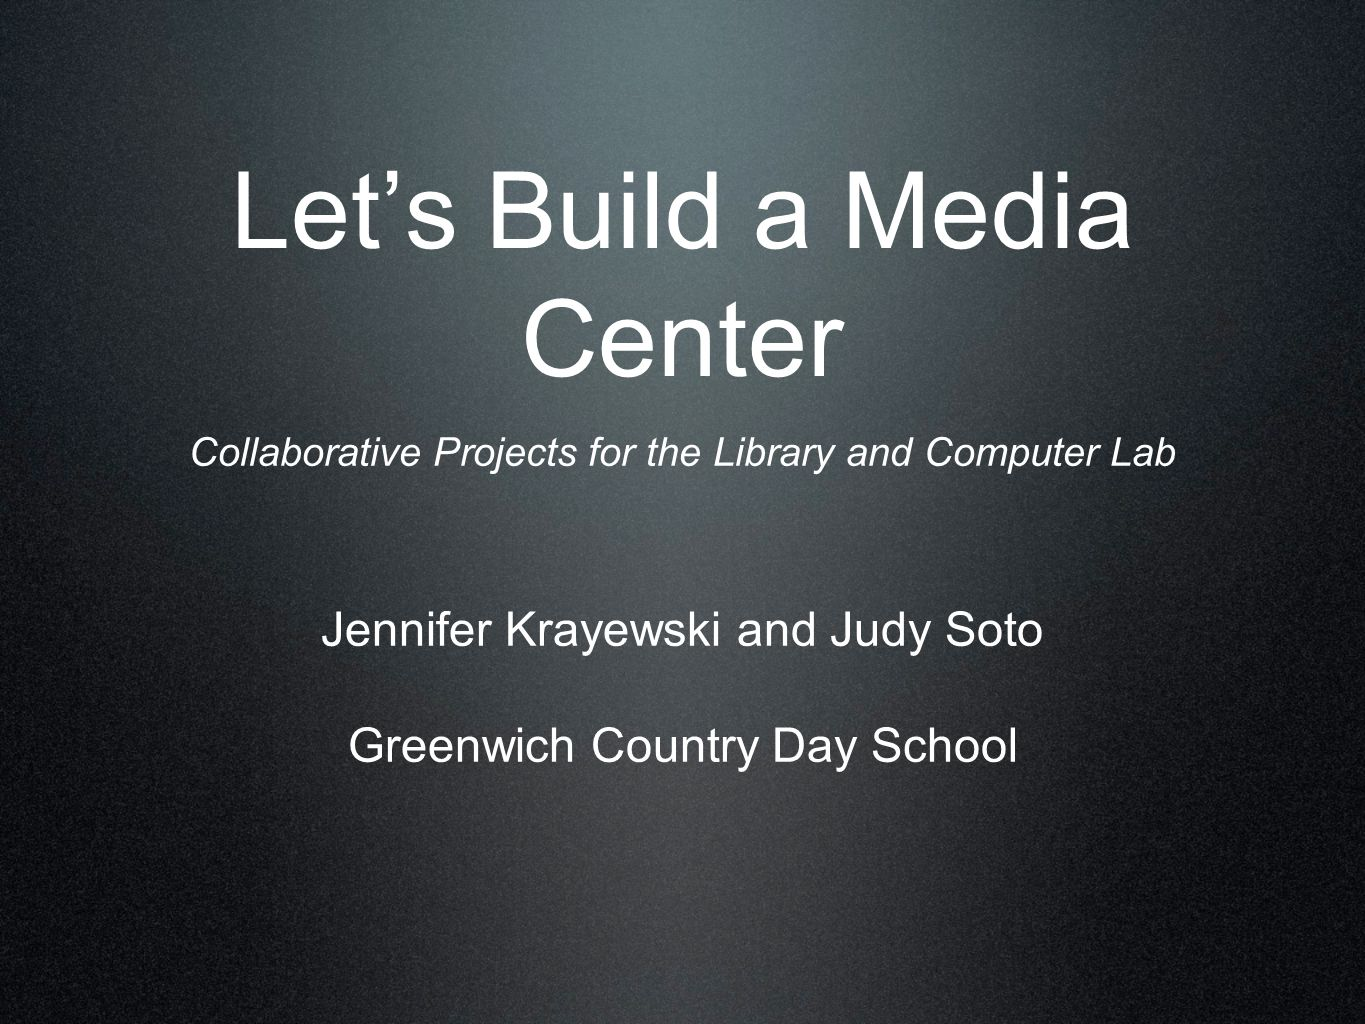 Let's Build a Media Center